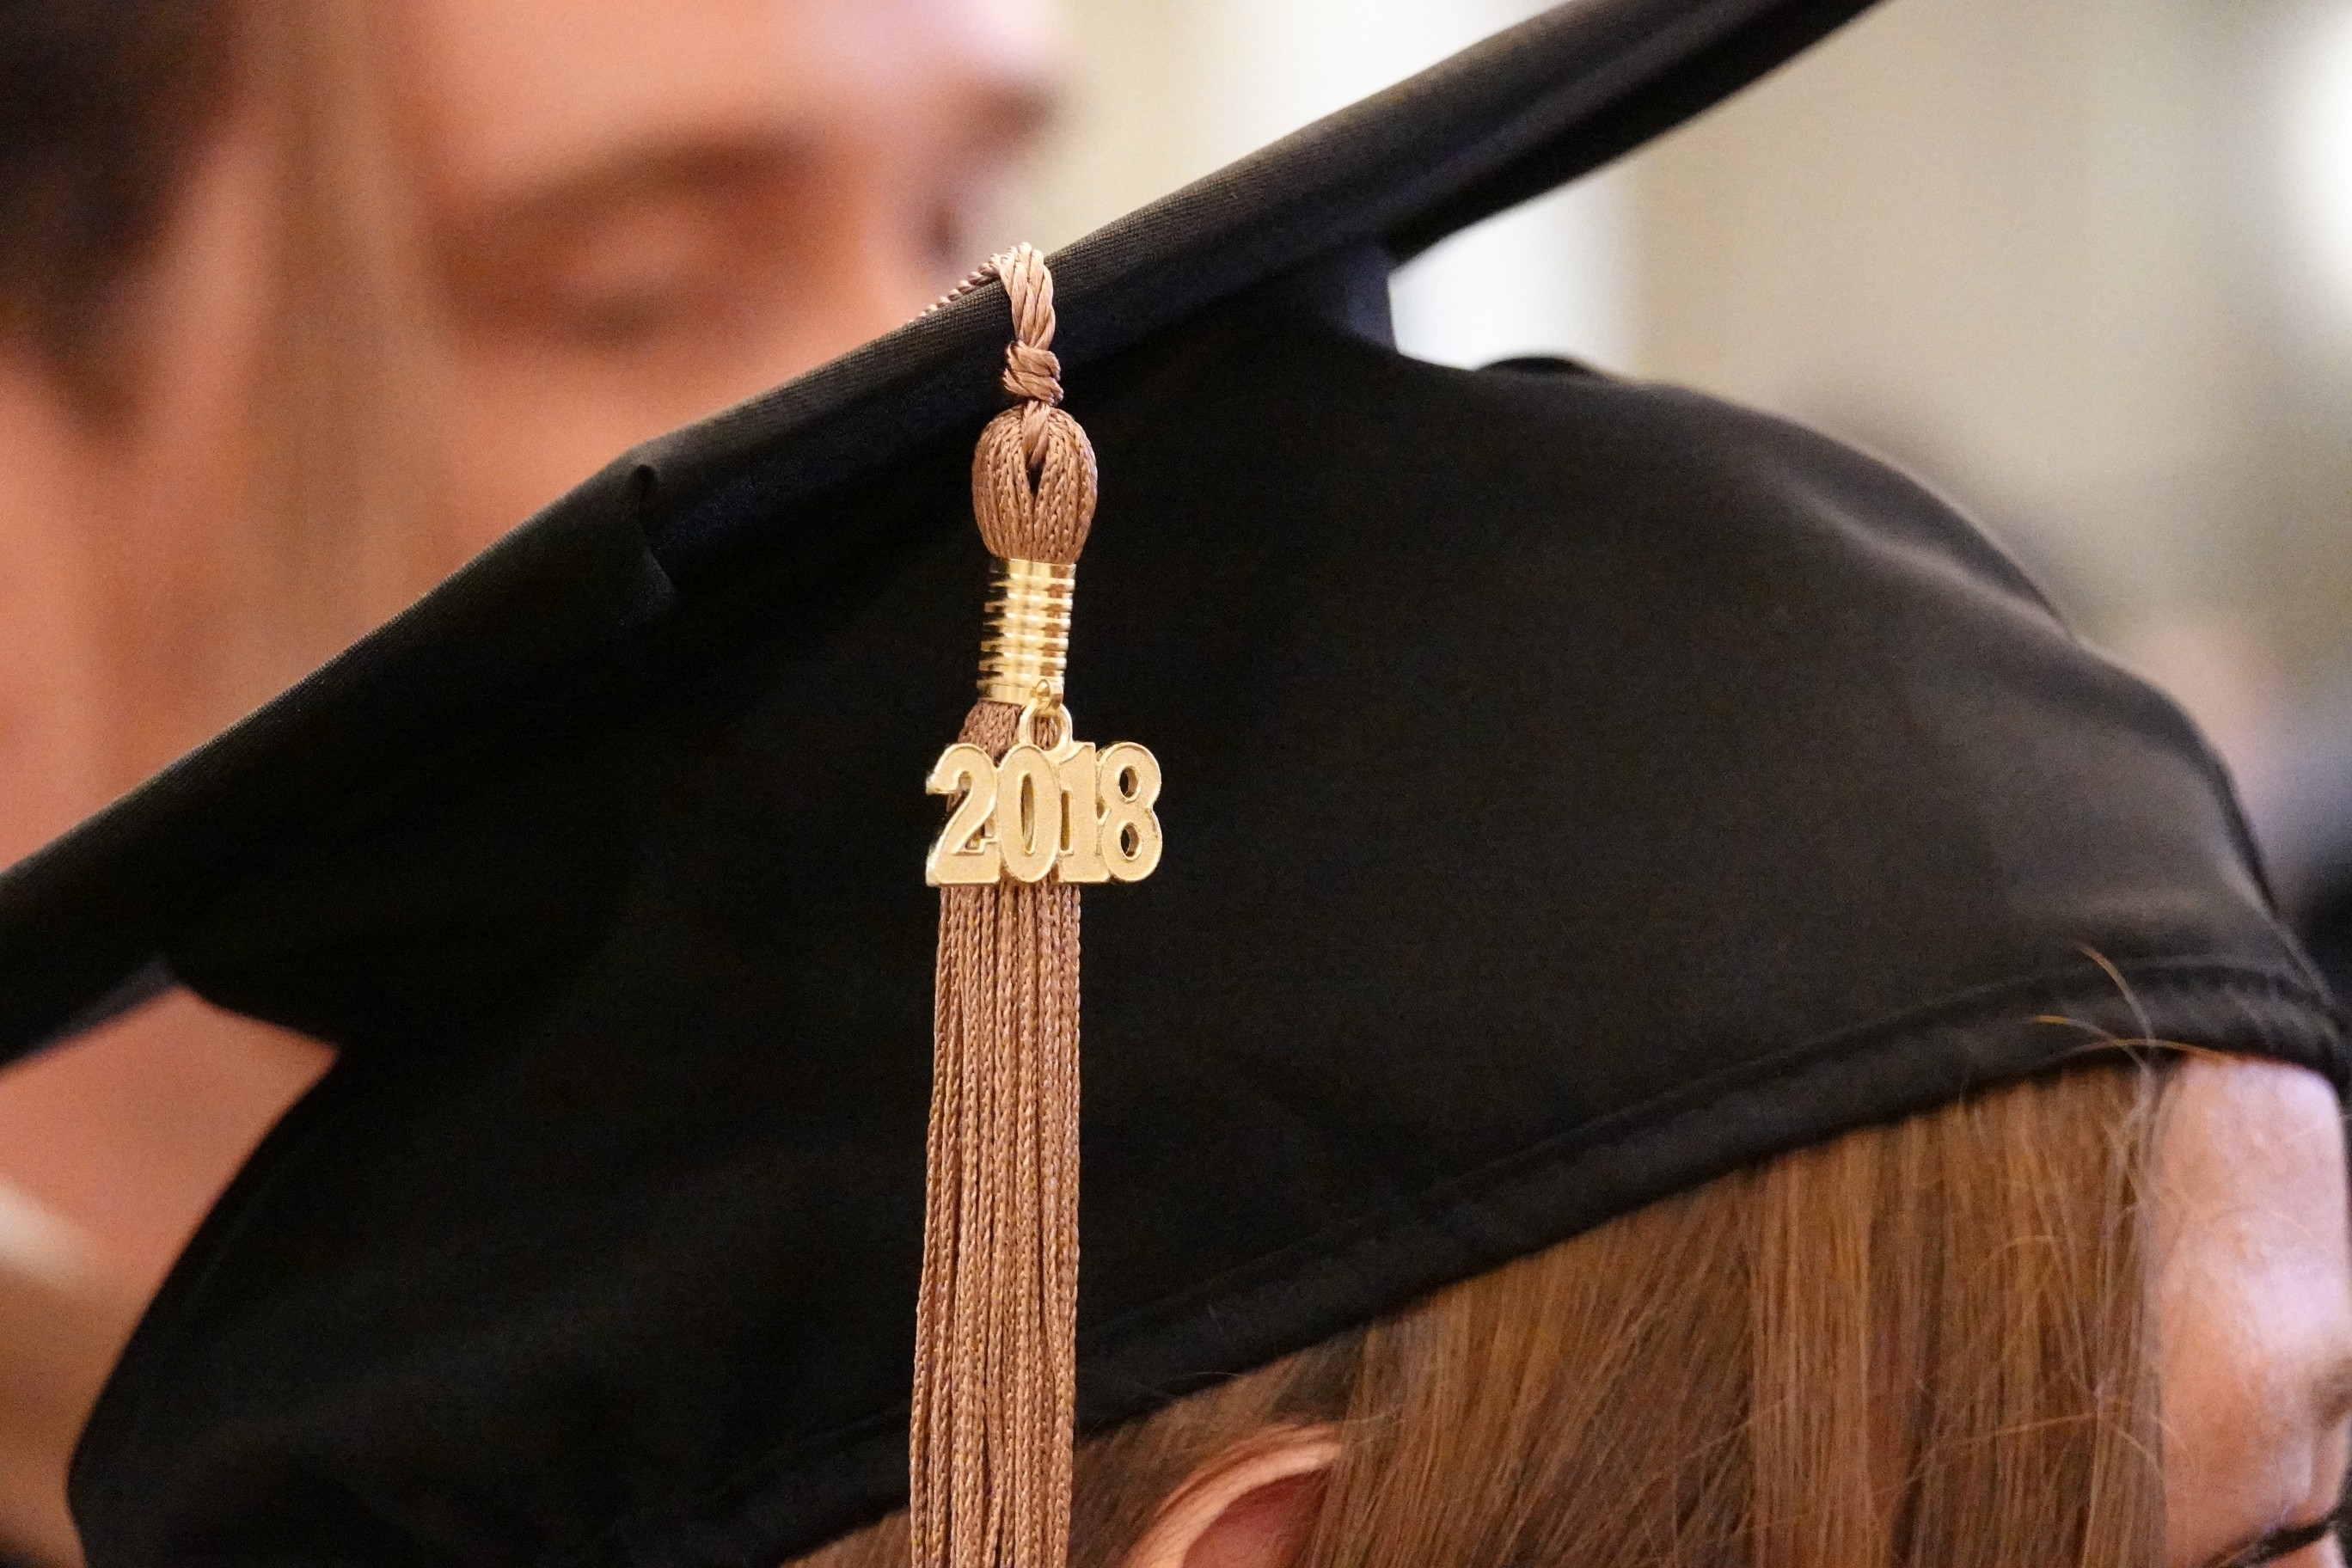 Close shot of 2018 badge on tassel